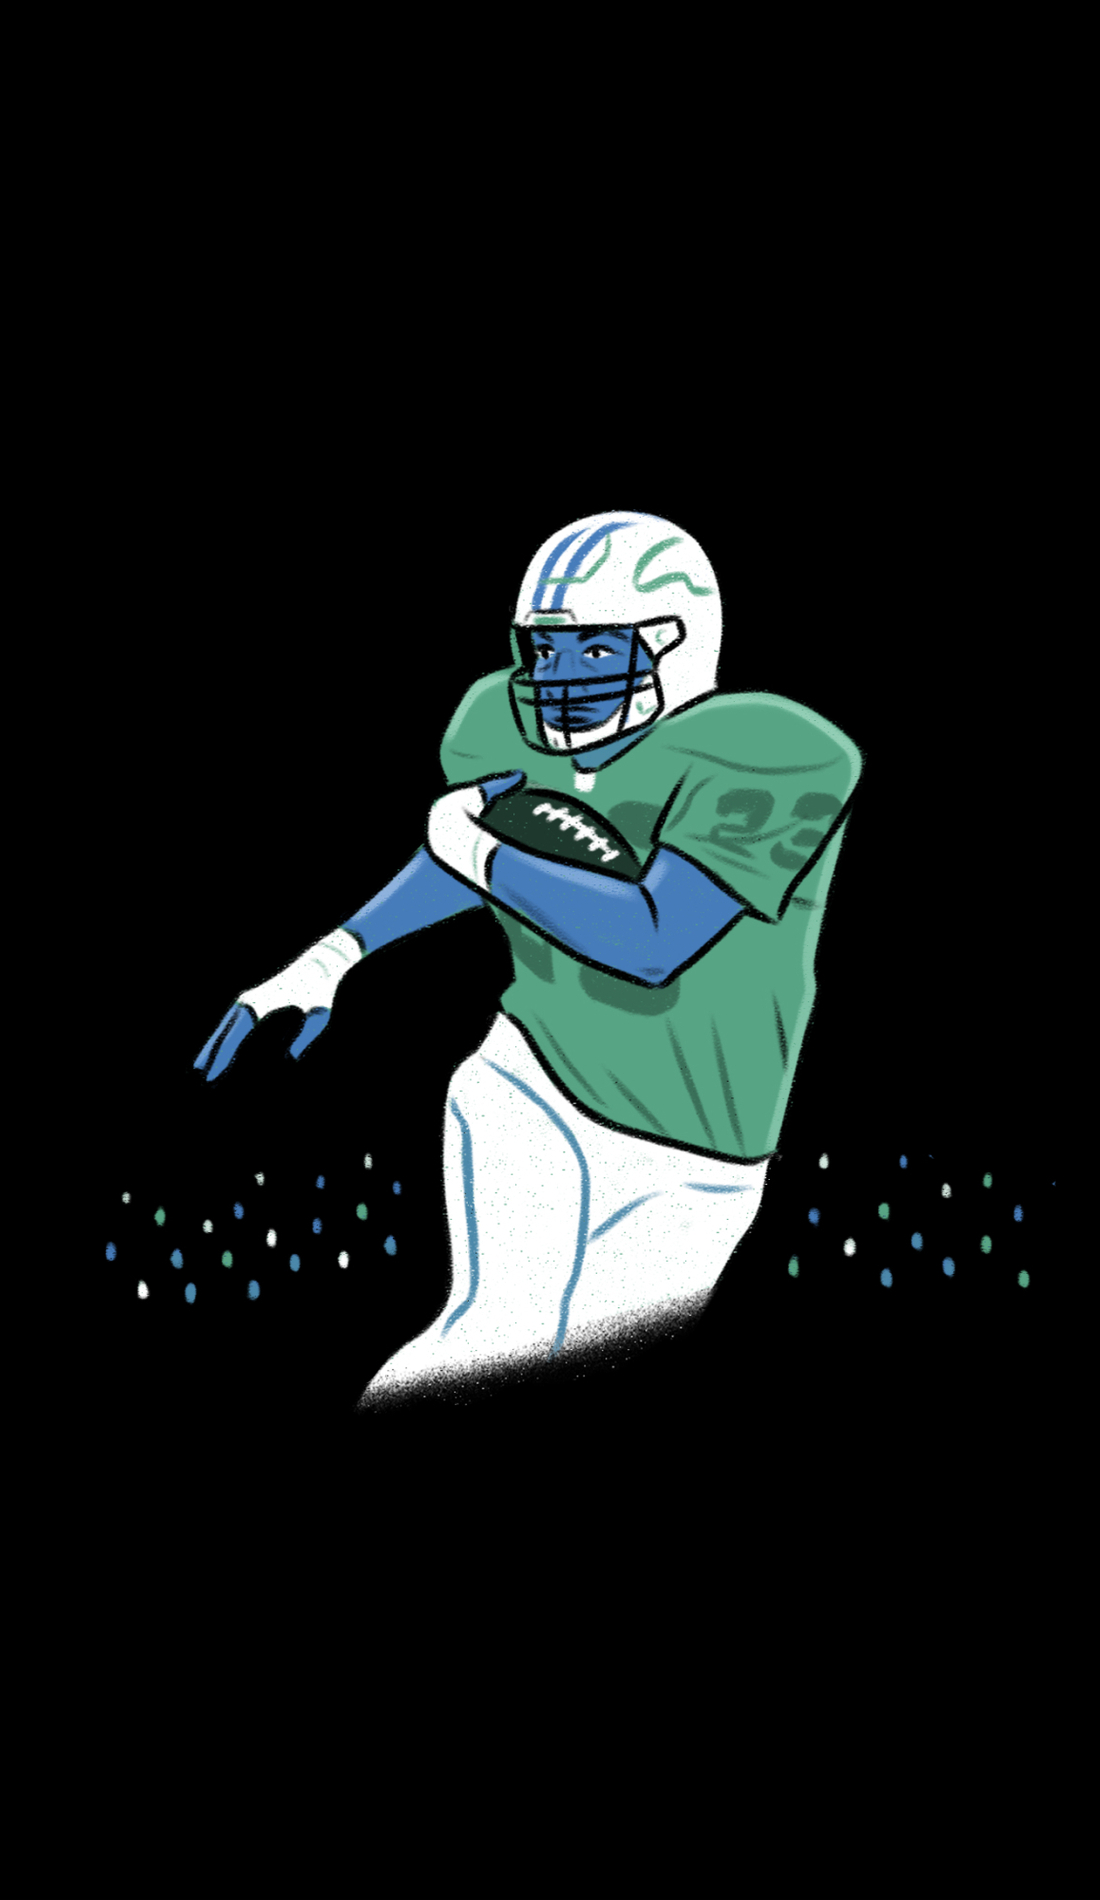 A UConn Huskies Football live event